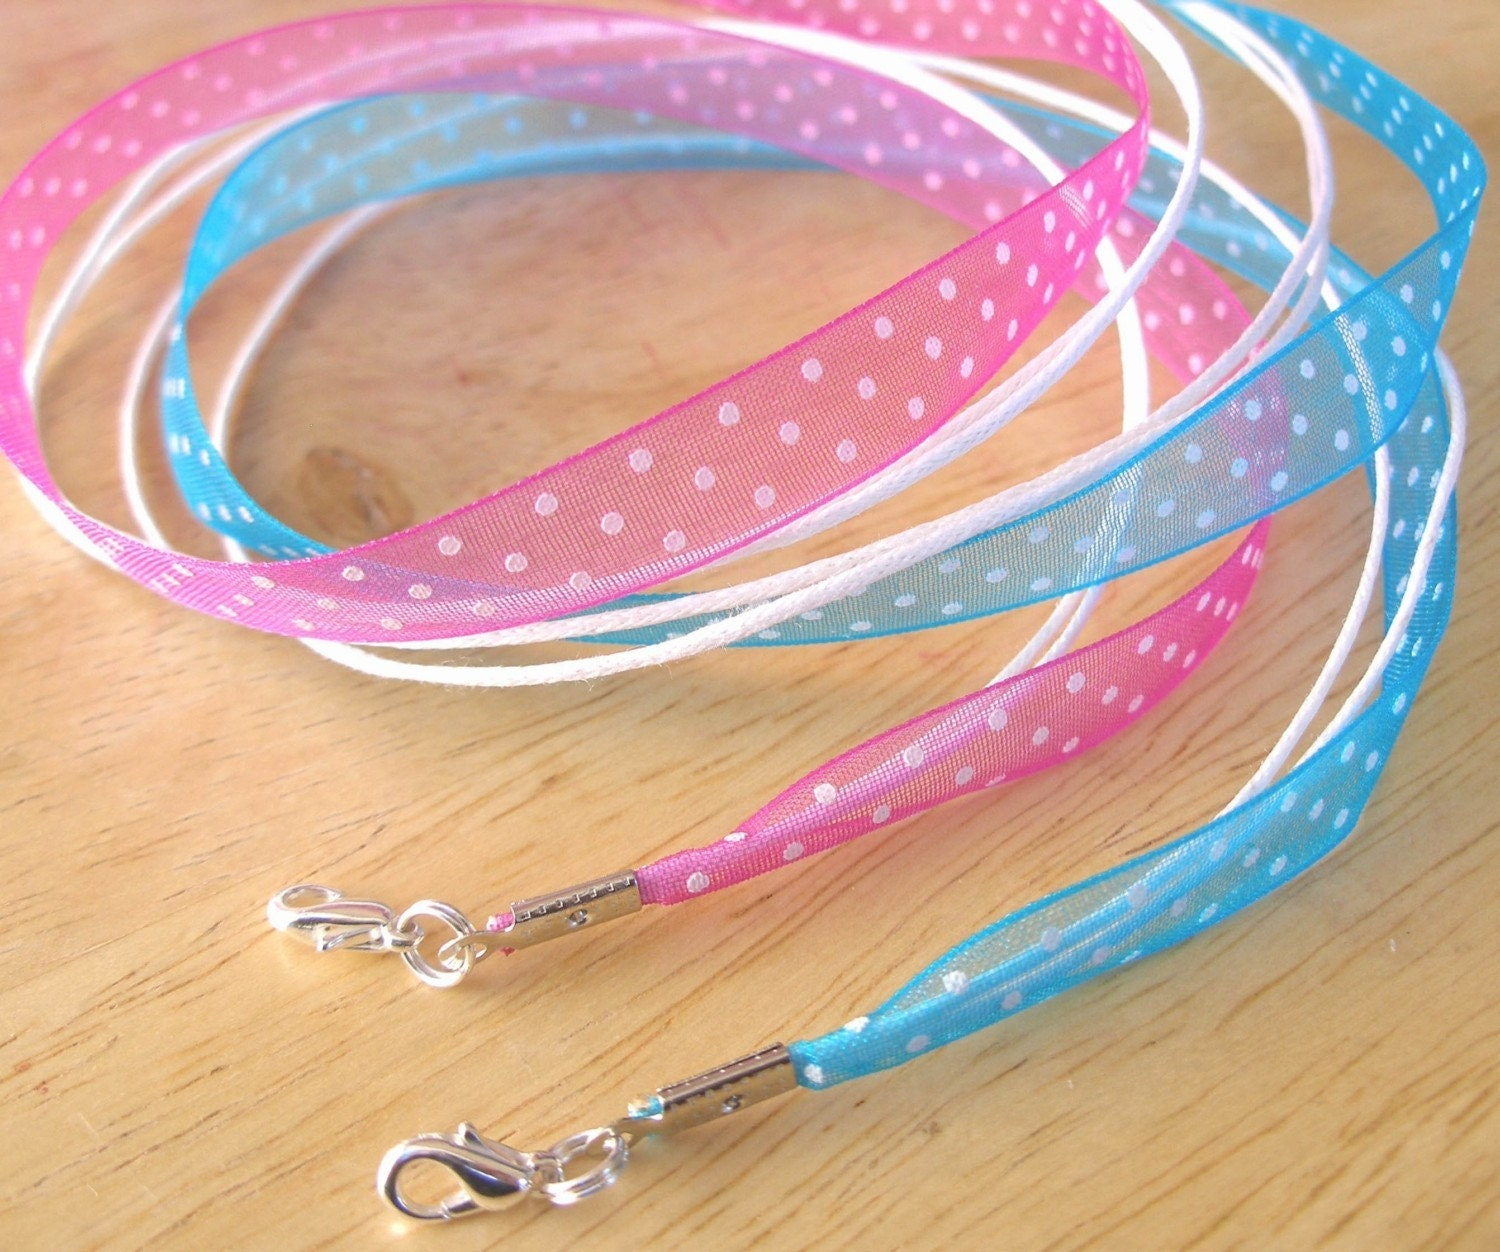 20 - Polka Dot Organza Cord Necklaces - 8 Colors, Any length, Fits Scrabble/Glass Tile Pendants - Handmade in USA